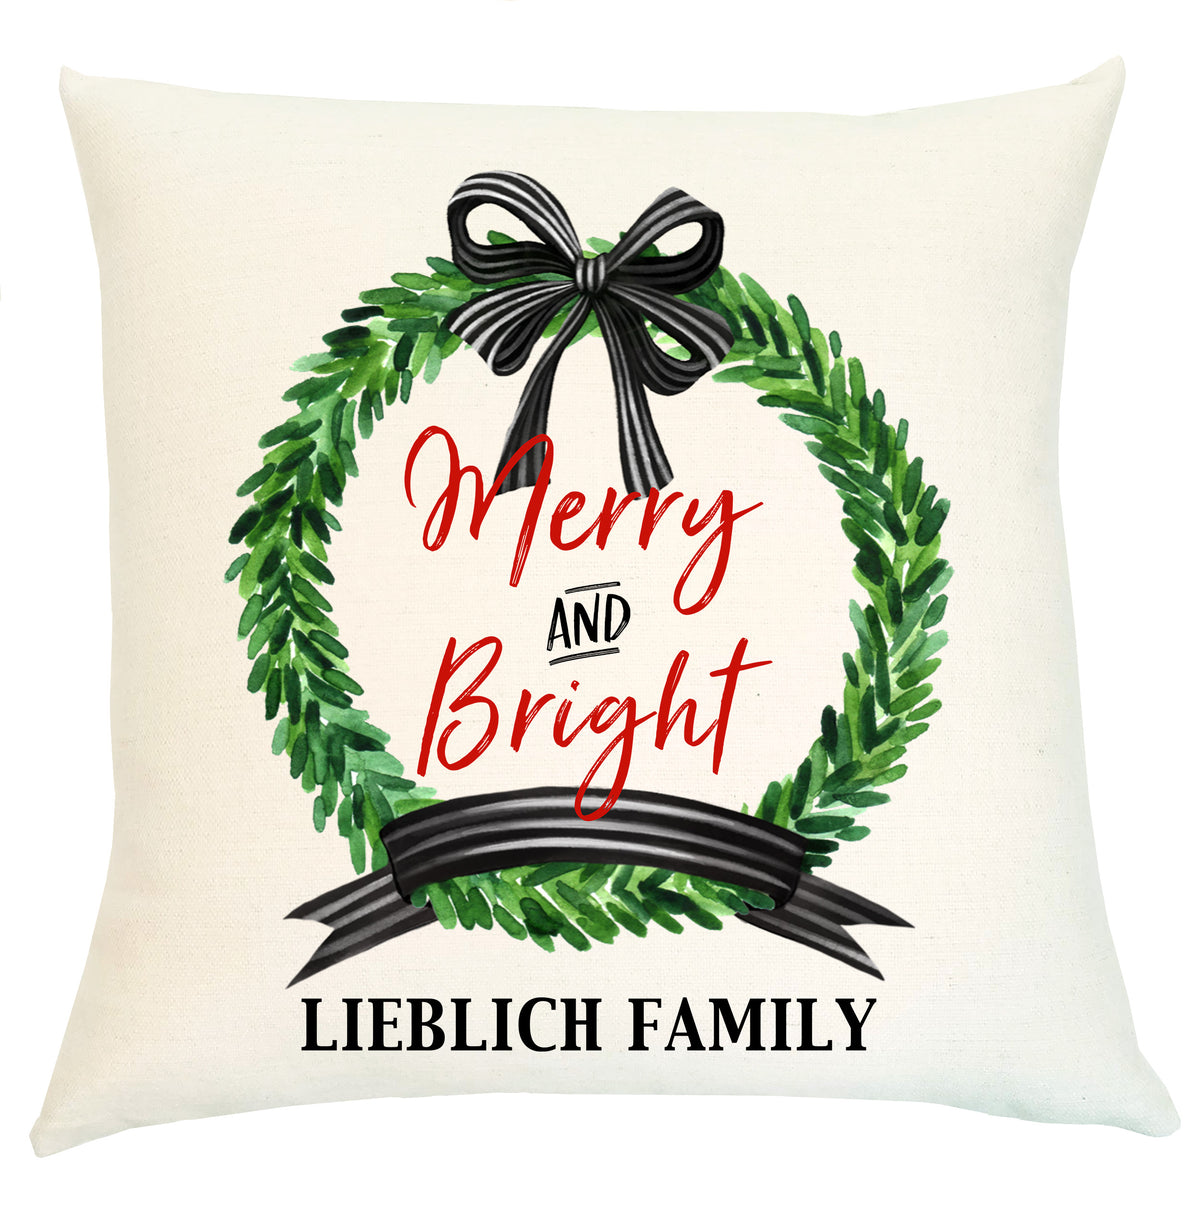 Pillow Personalized - Wreath Black and White Merry and Bright